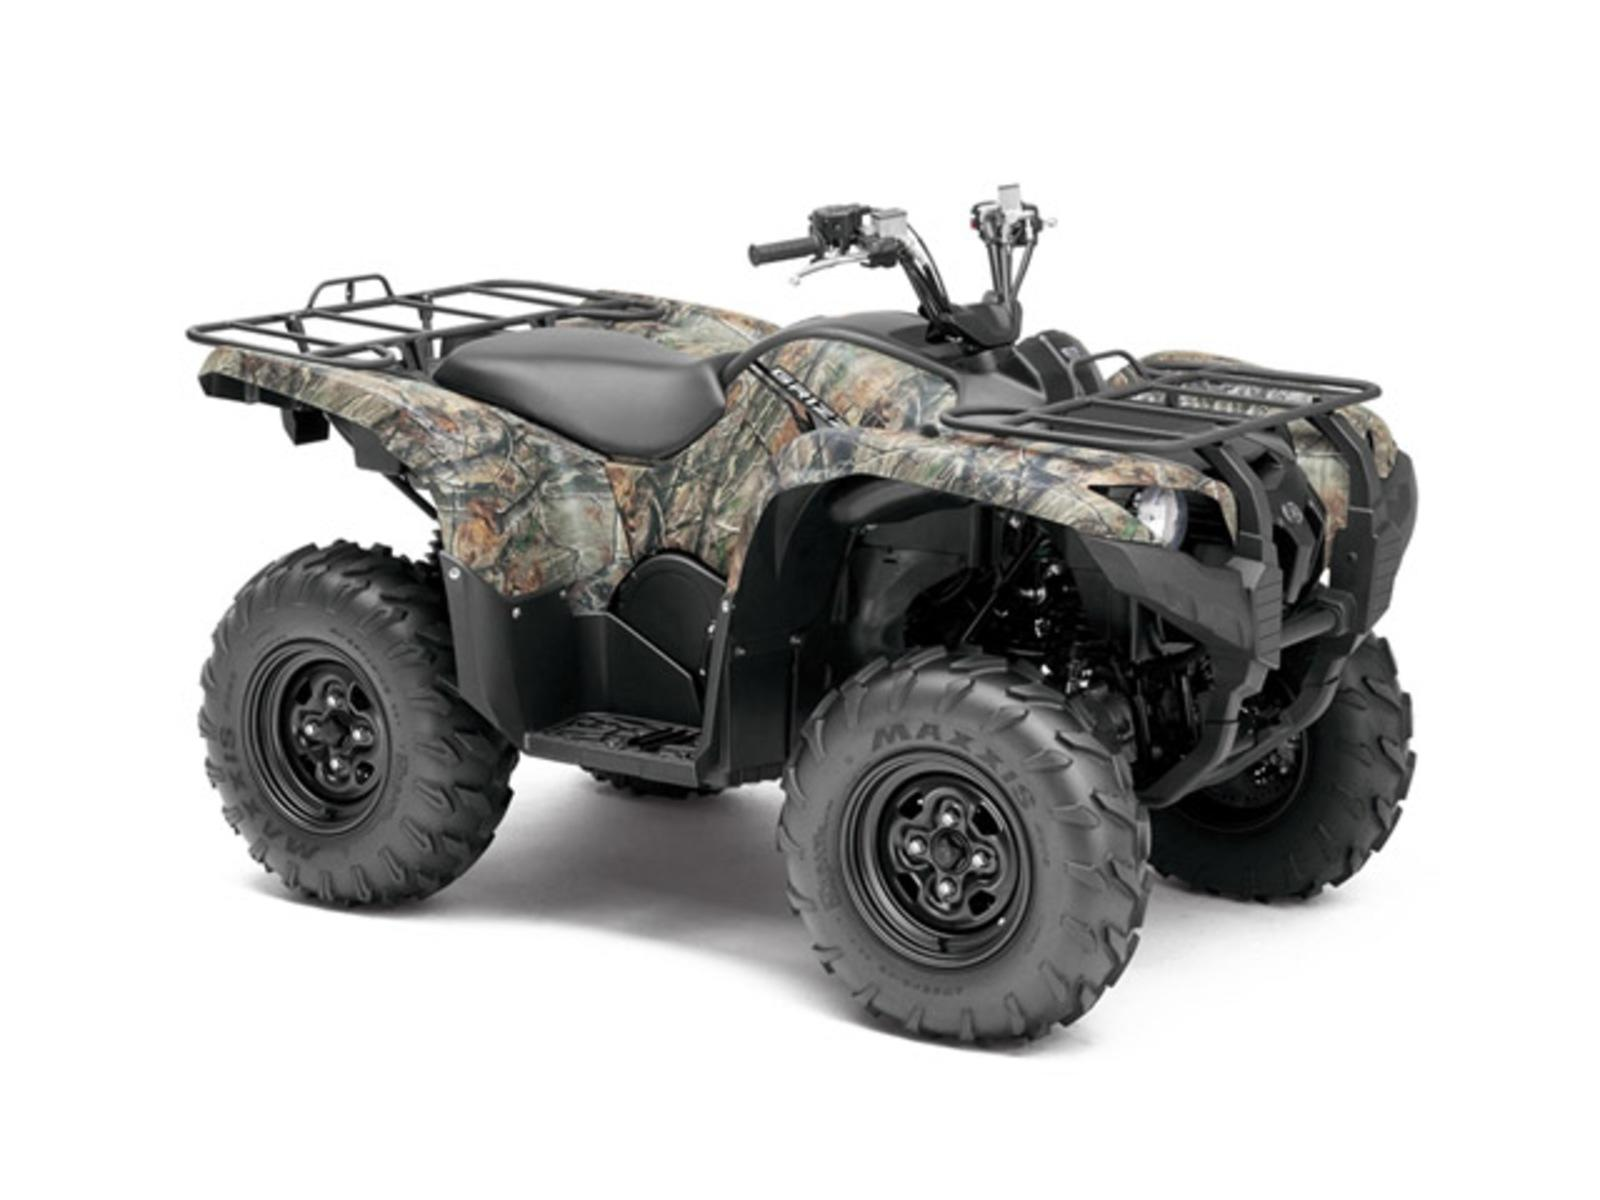 Yamaha Grizzly 550 Fi Review